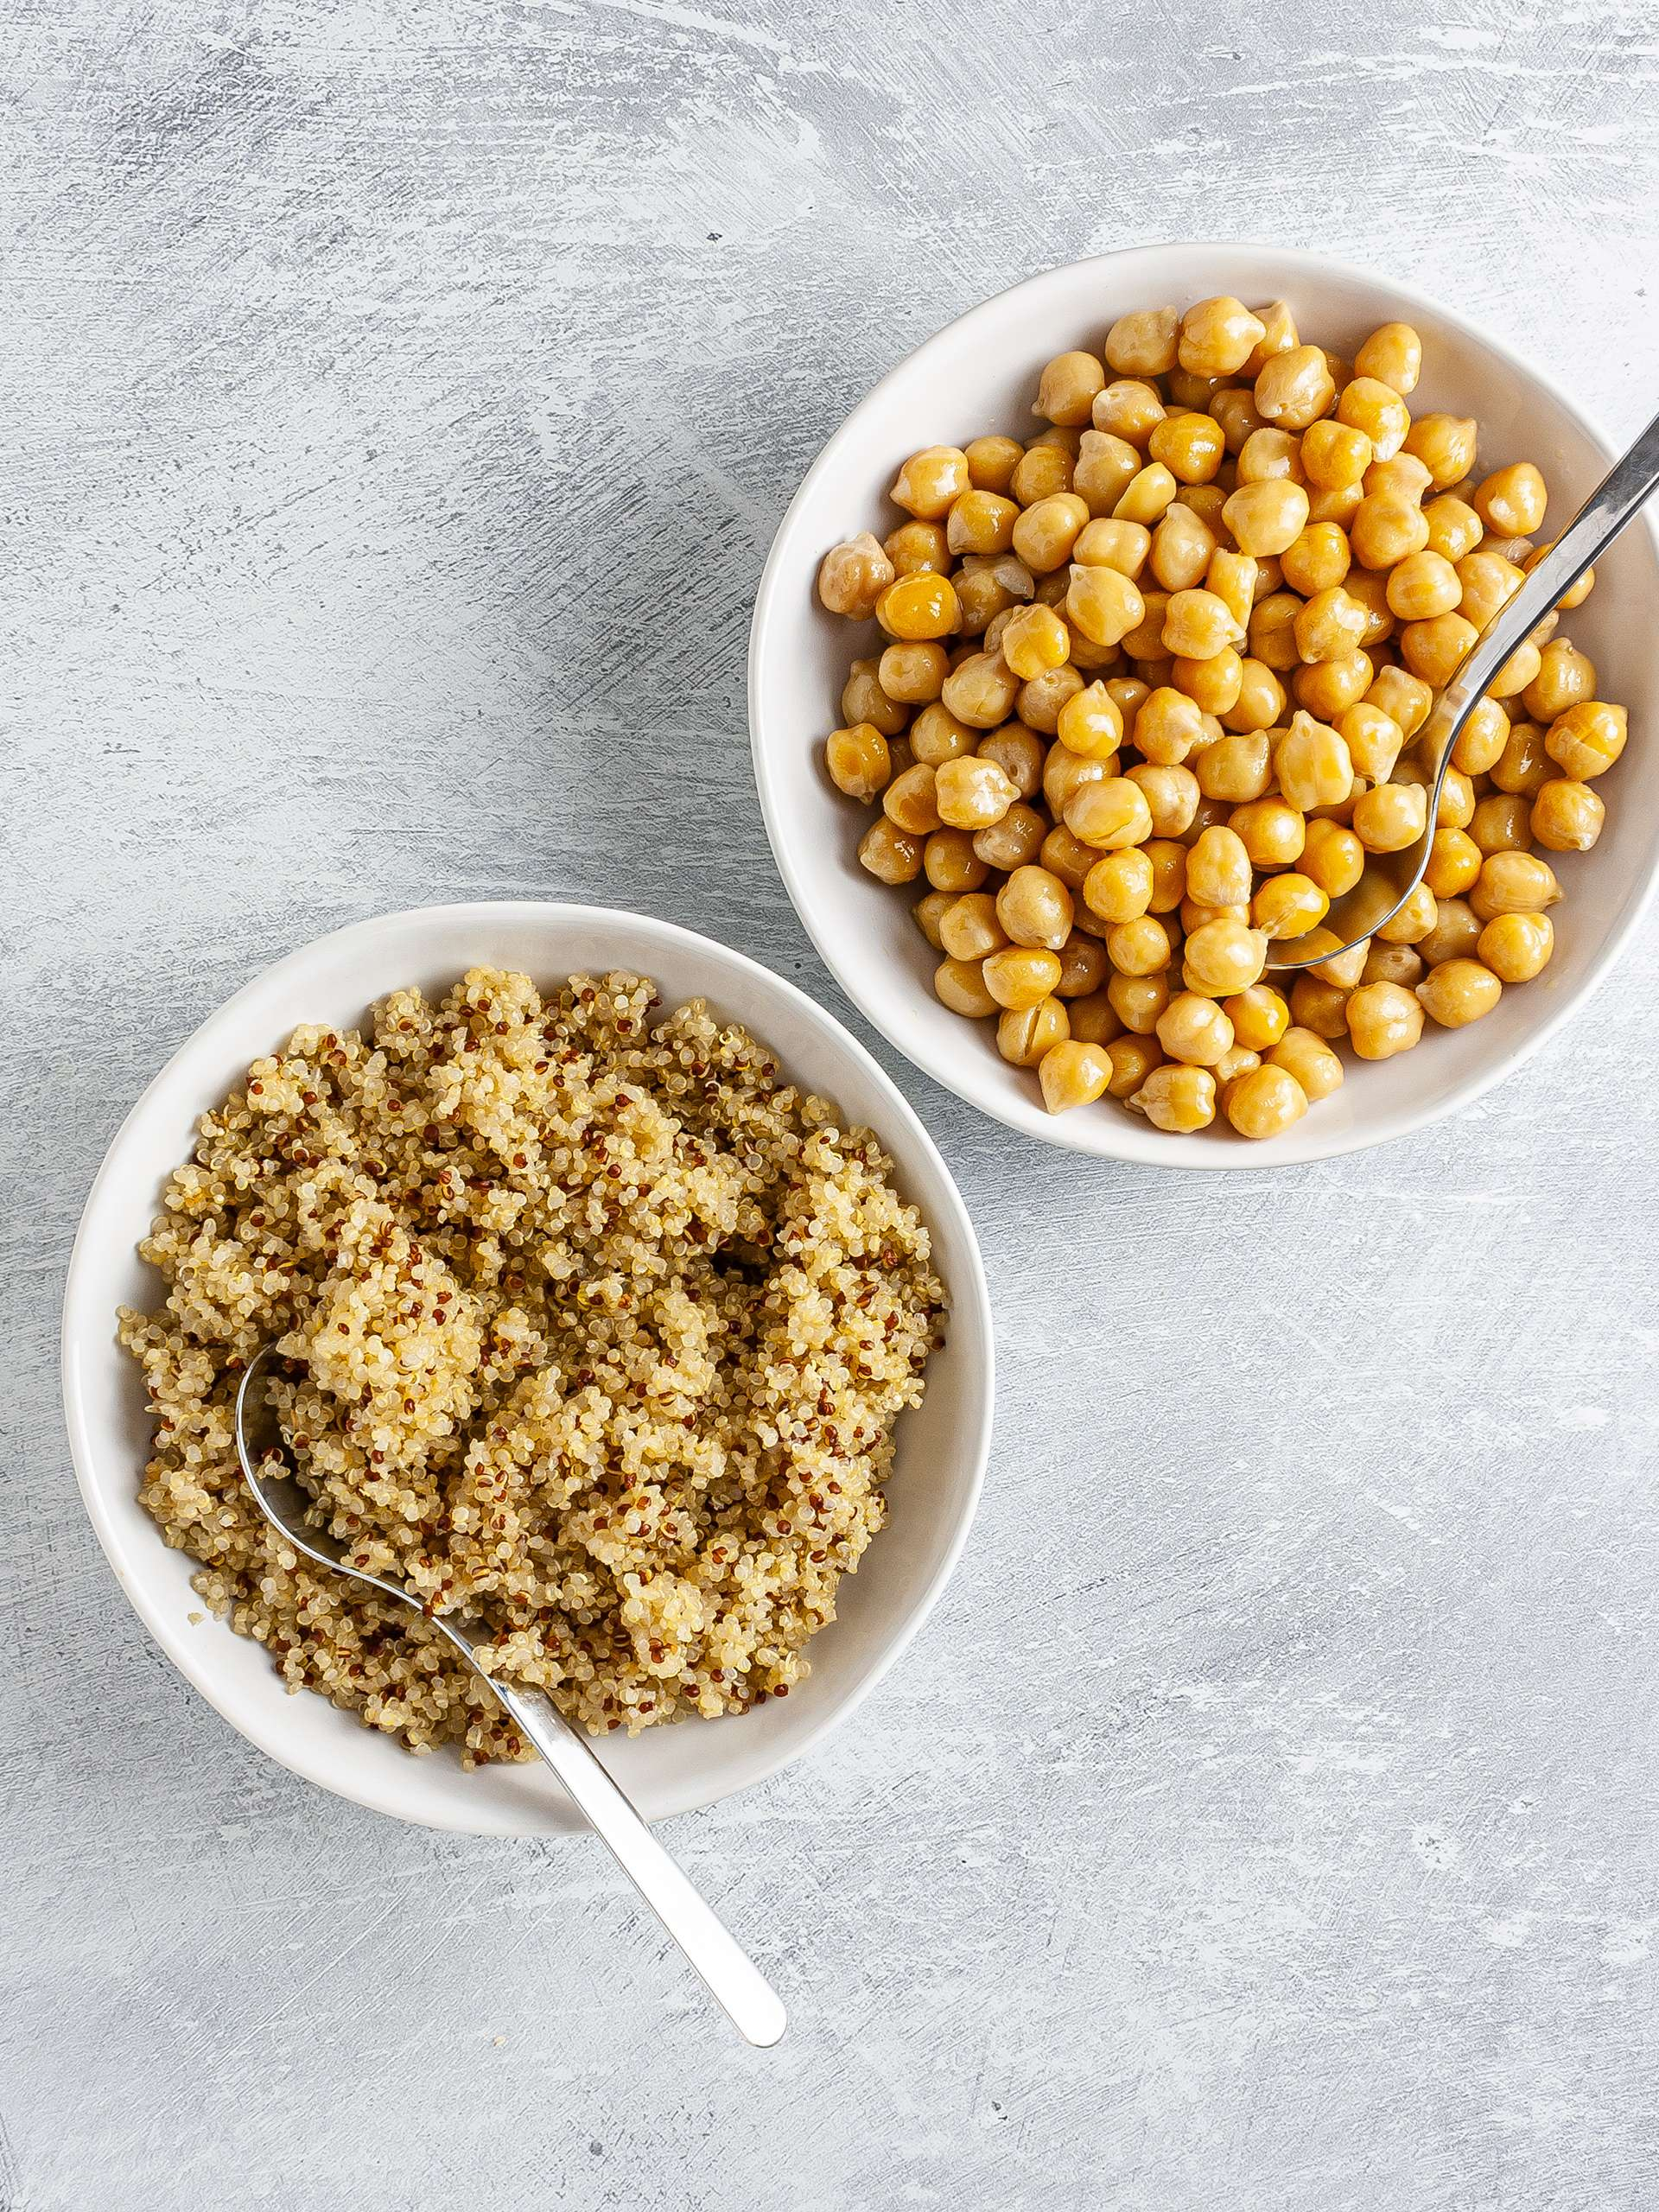 Cooked quinoa and chickpeas